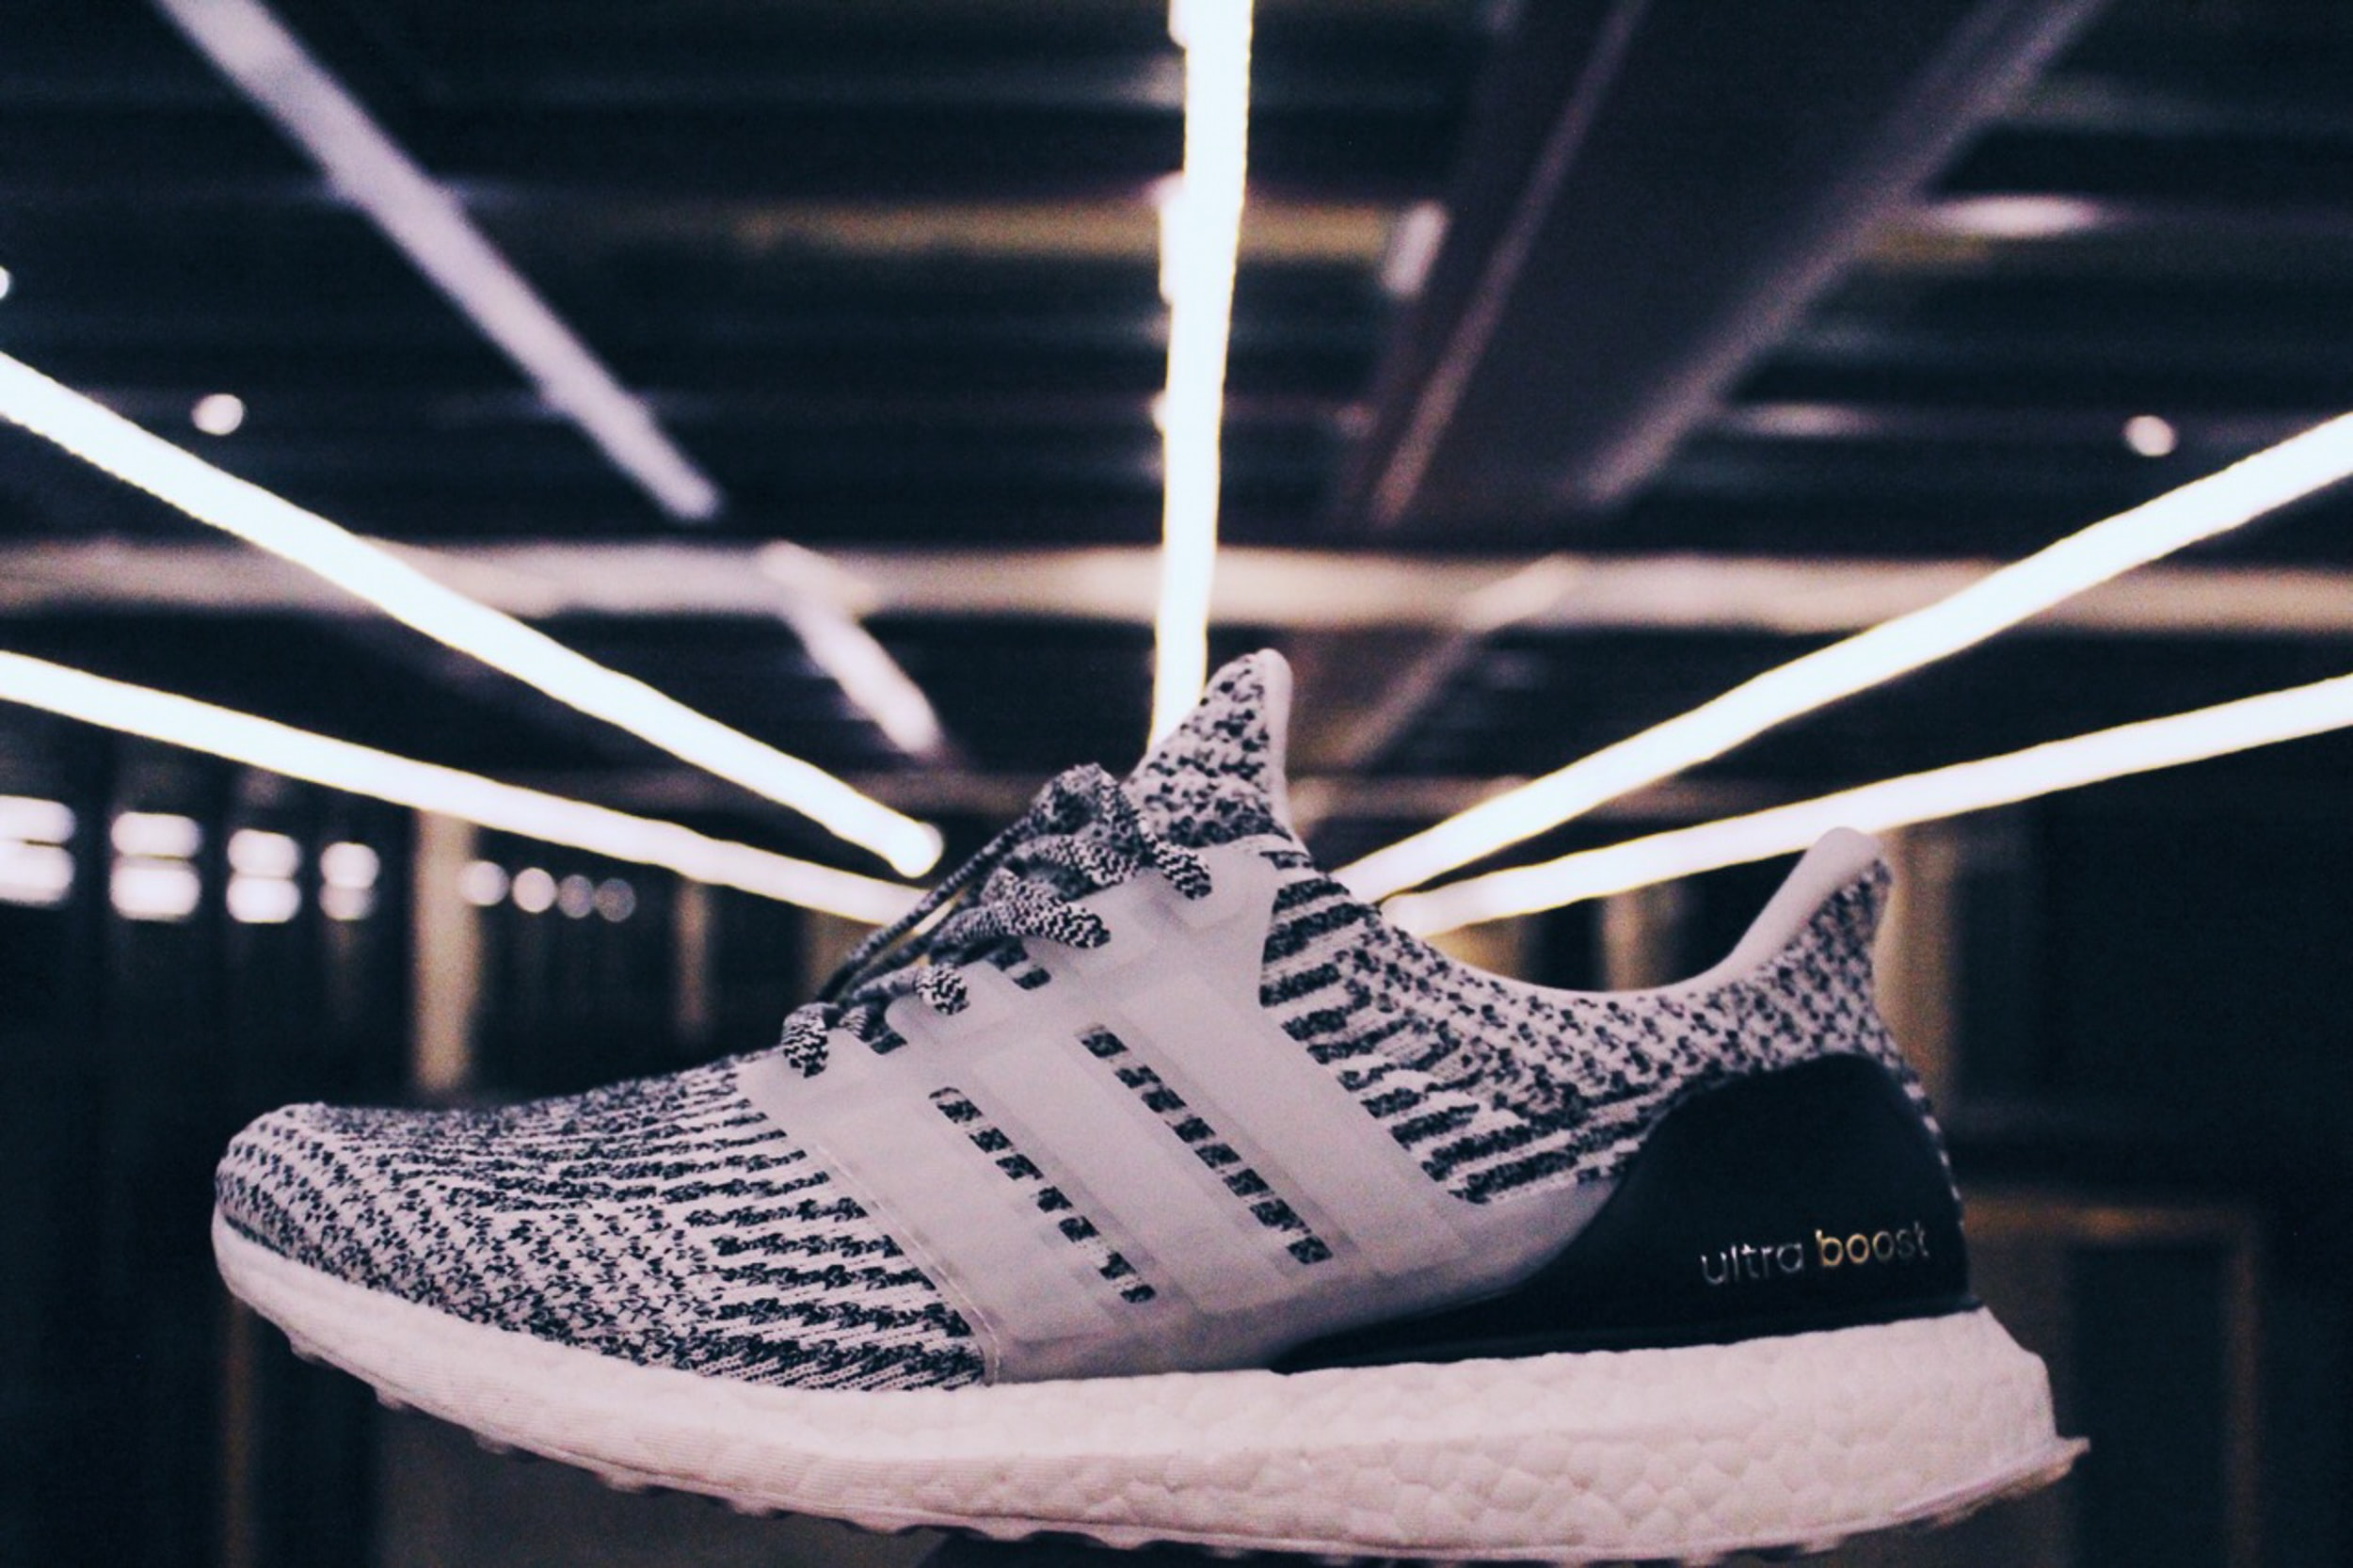 unpaired white and black adidas ultraBOOST shoe